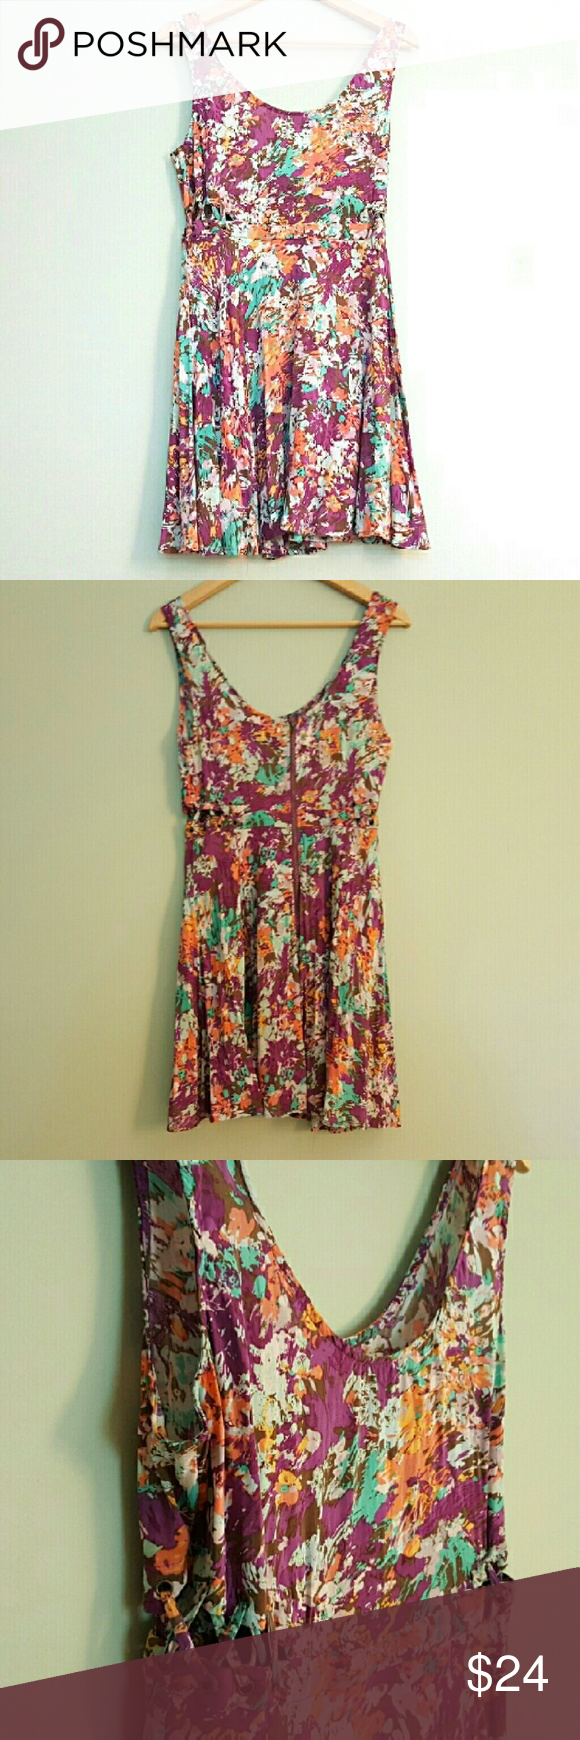 Lucca Couture Laced Side Cutout Floral Dress 8 This fun dress features laced up cutouts on the side and a flared skirt. It is in good pre-owned condition with only minor signs of wear. Size 8. Lucca Couture Dresses Mini